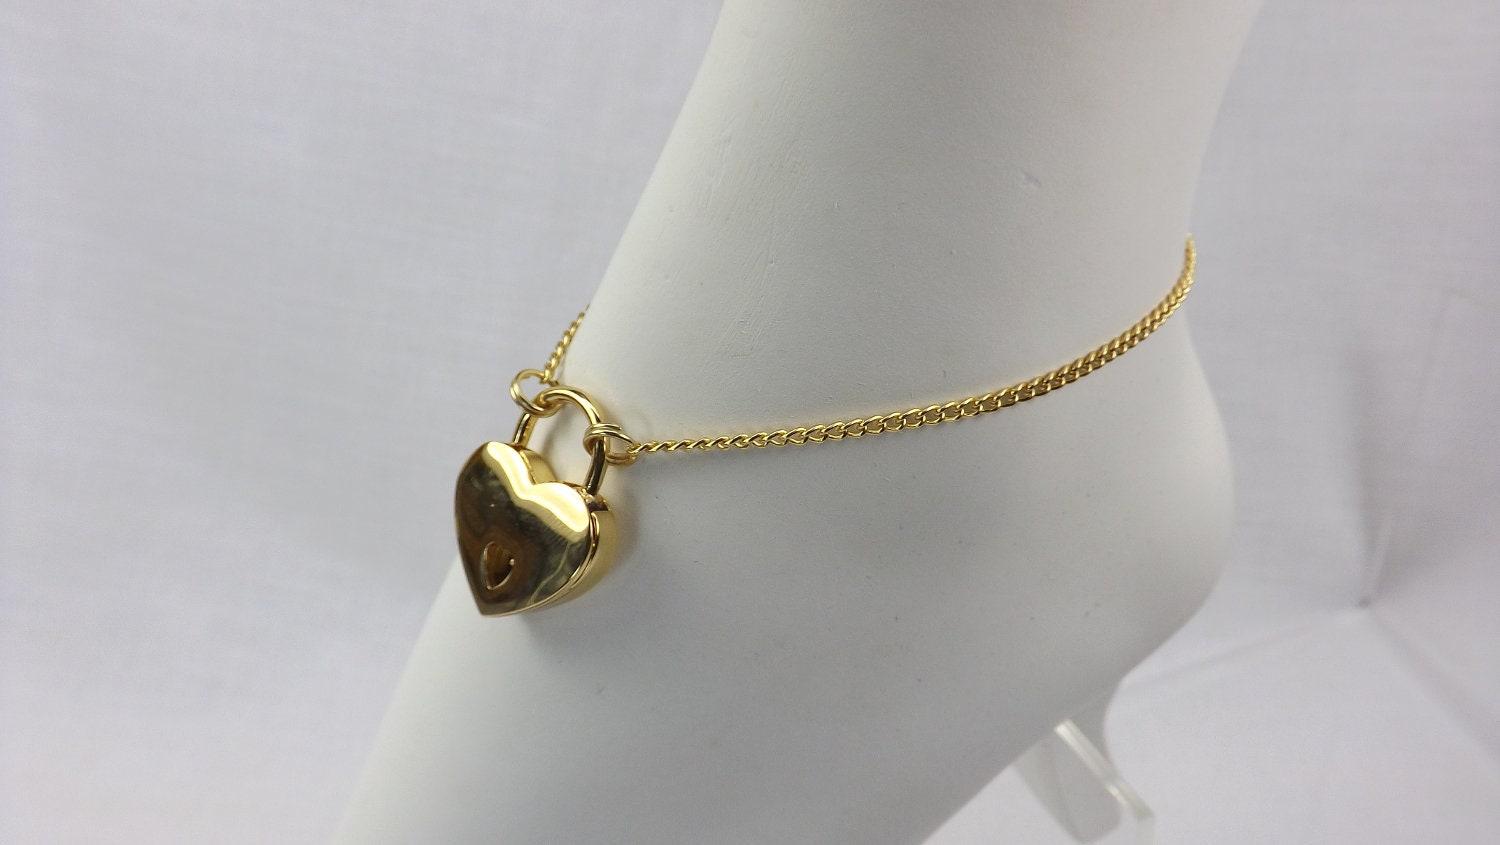 Gold Heart Lock anklet bdsm jewelrygift for her submissive ankle bracelet locking jewelry - product images  of